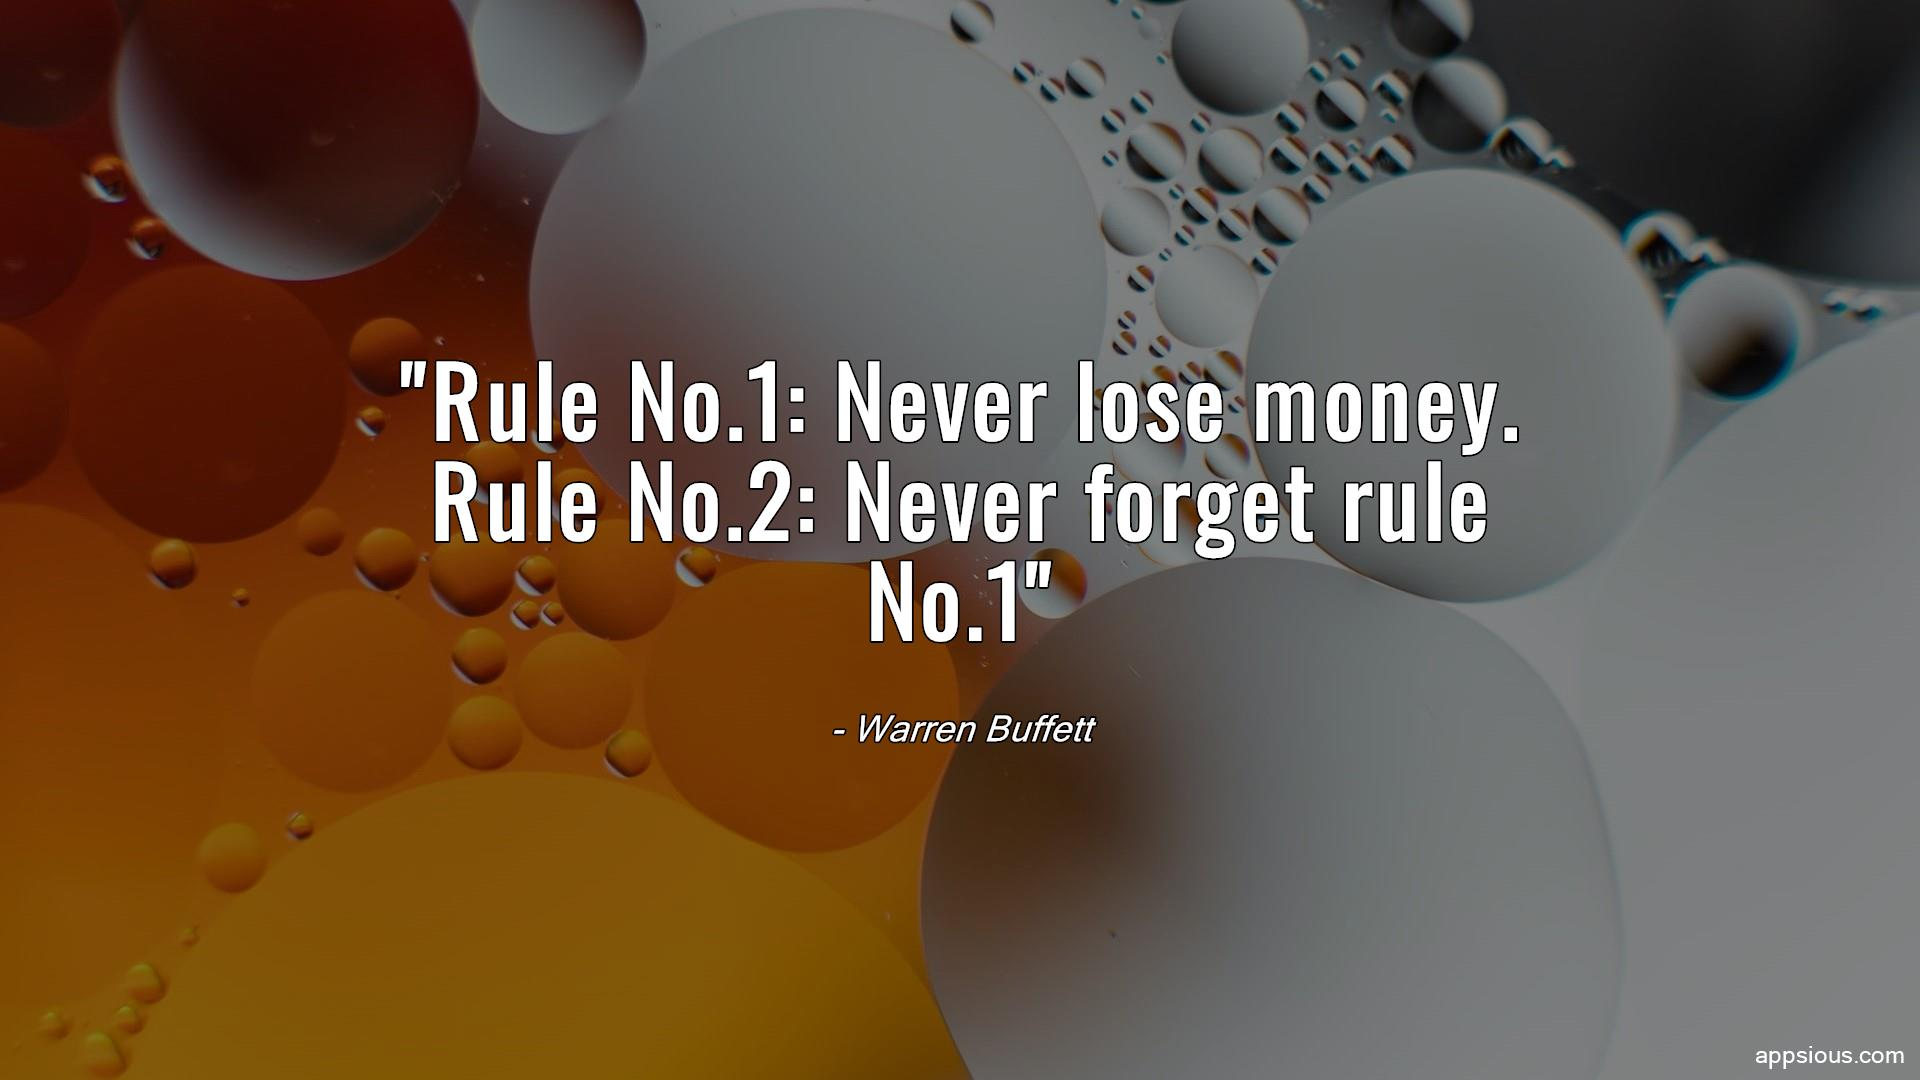 Rule No.1: Never lose money. Rule No.2: Never forget rule No.1